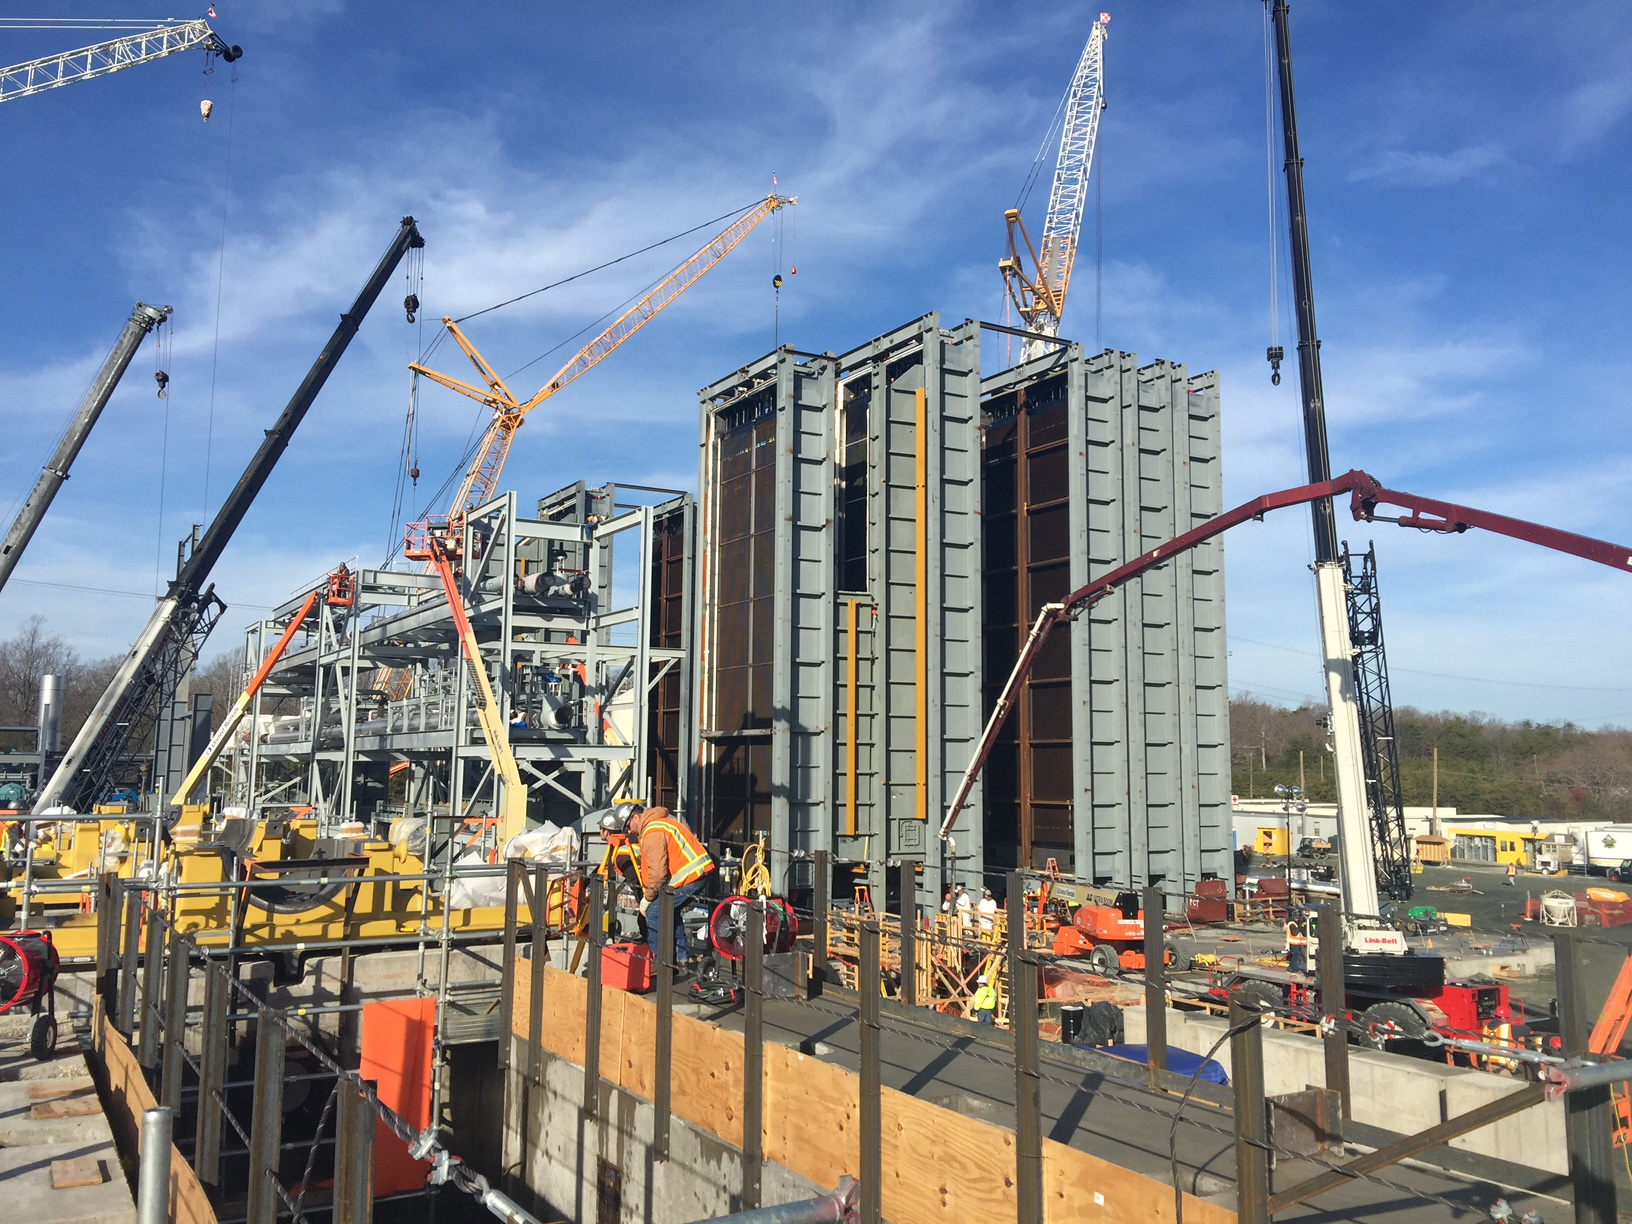 PSEG KEYS ENERGY CENTER: CONSTRUCTION STATUS UPDATE (as of February 1, 2017)